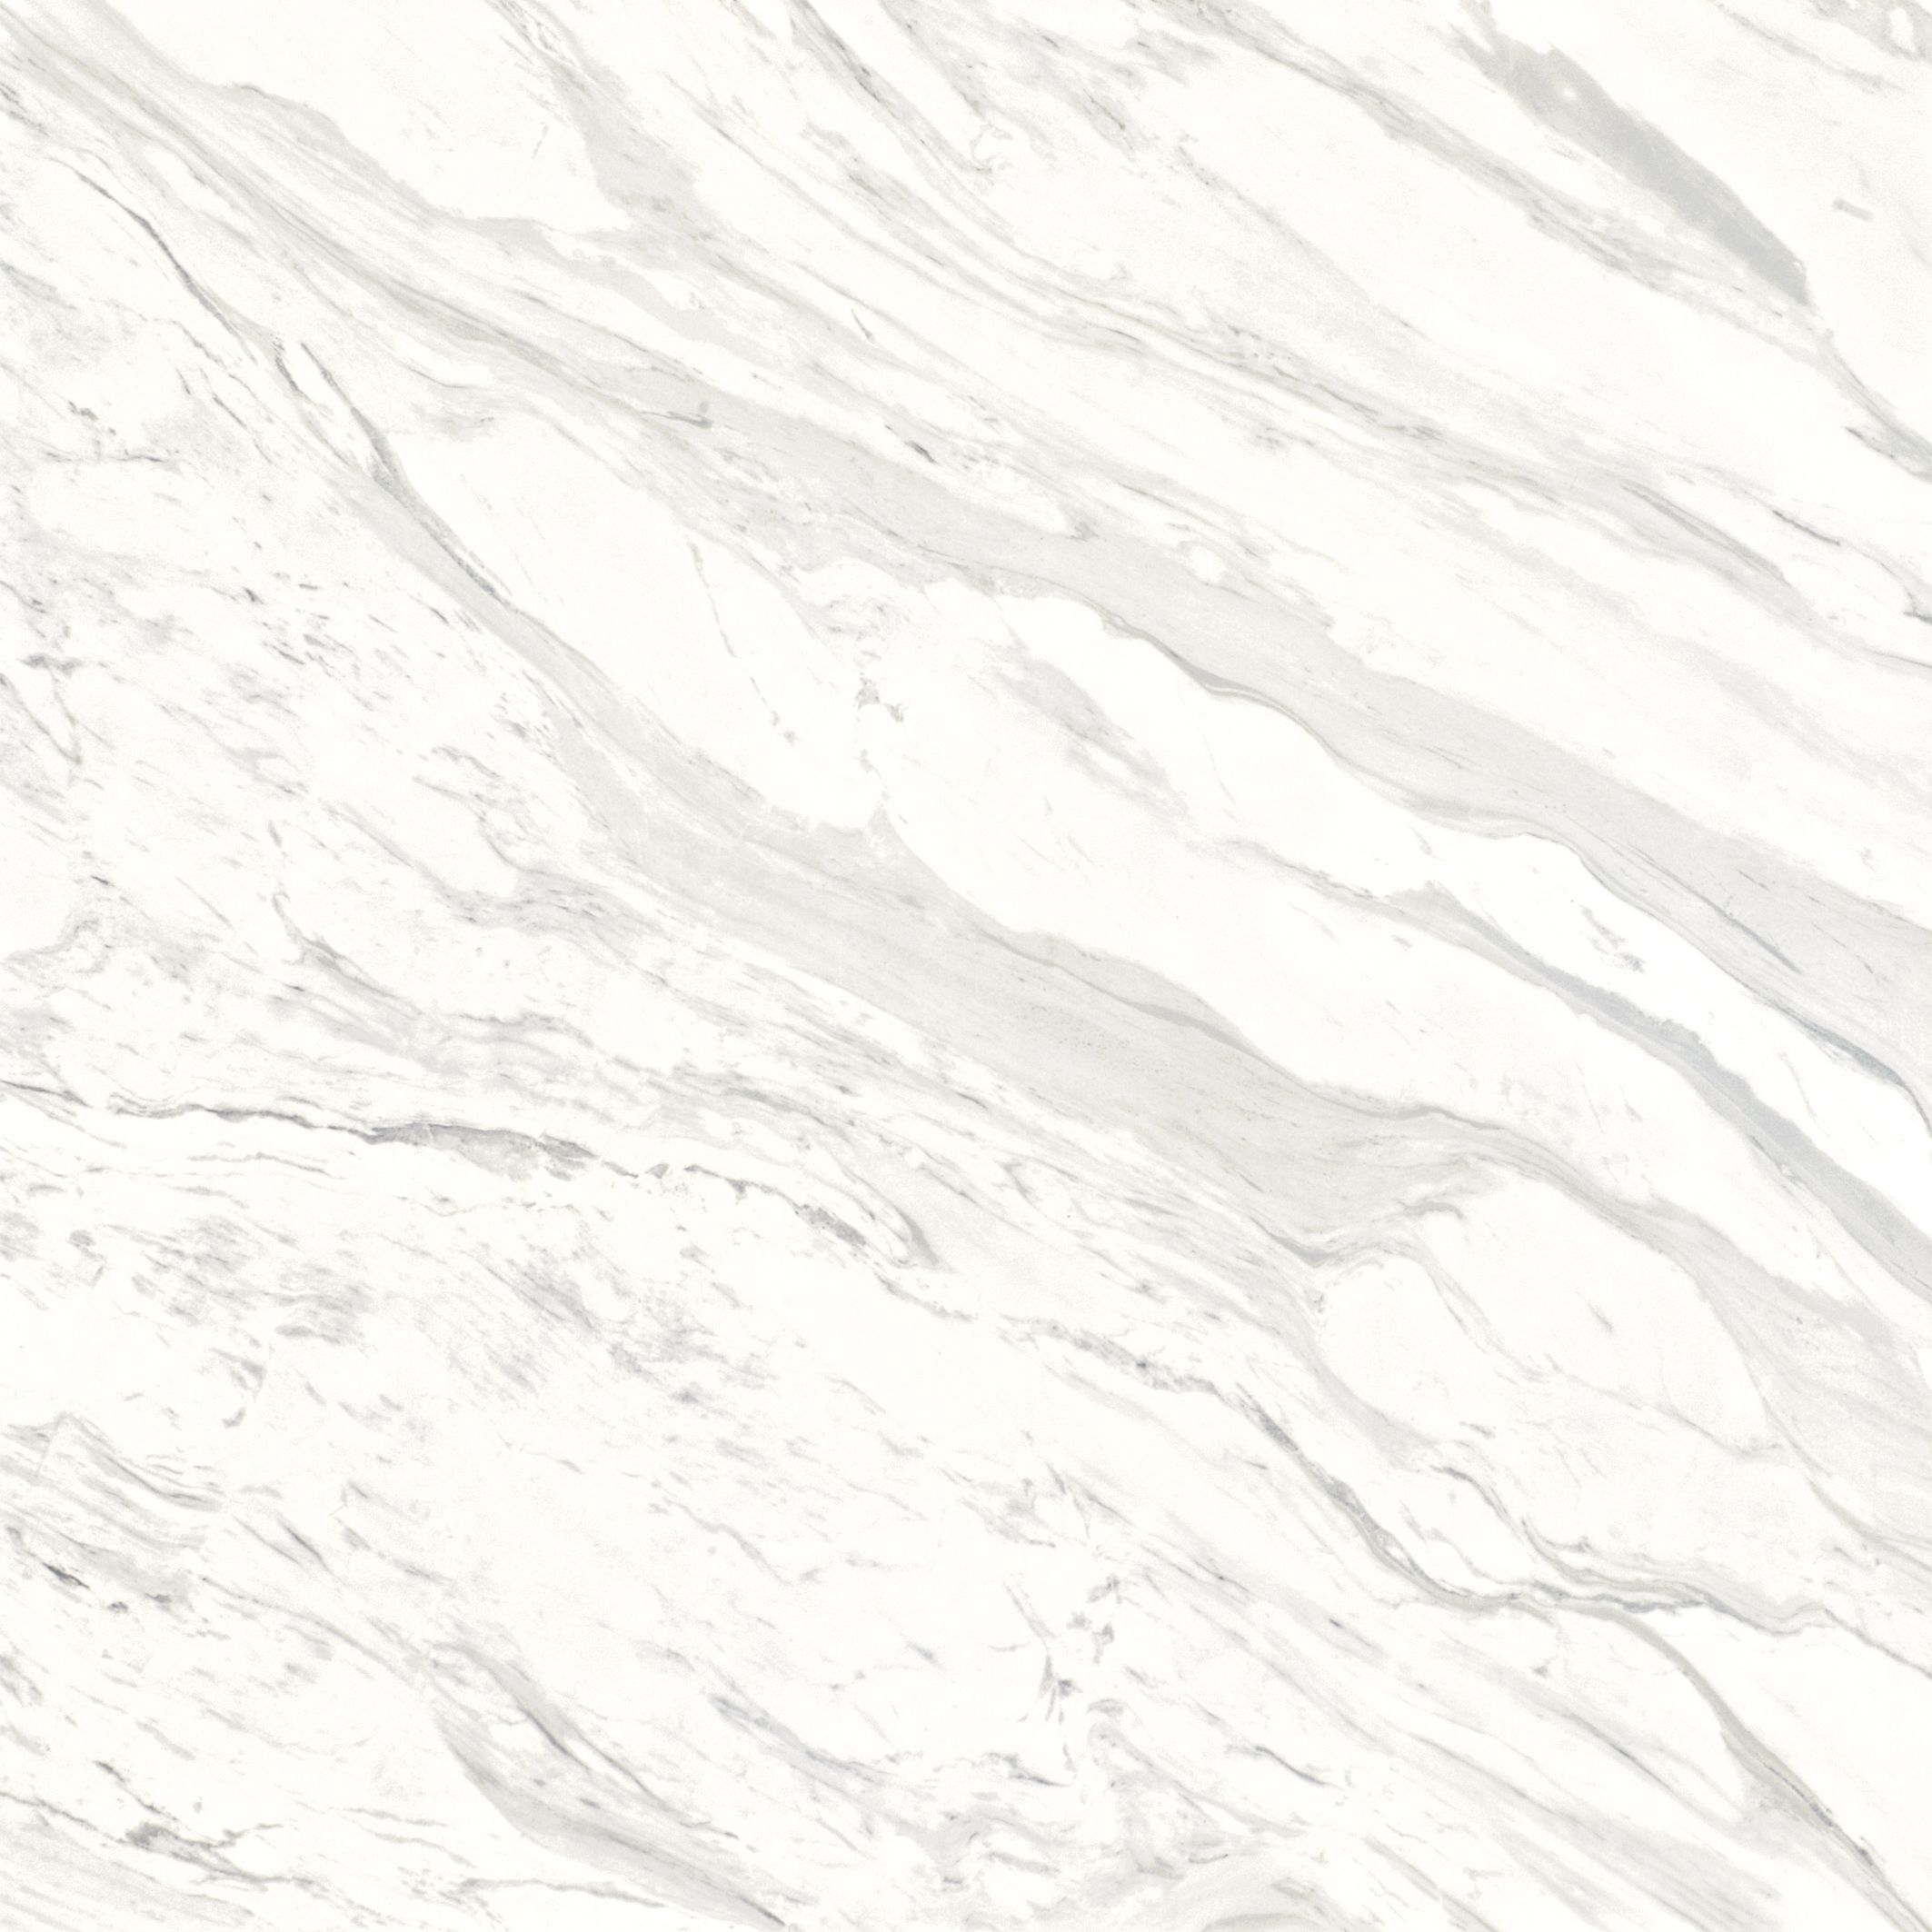 Volakas Marble is an elegant natural stone featuring a white